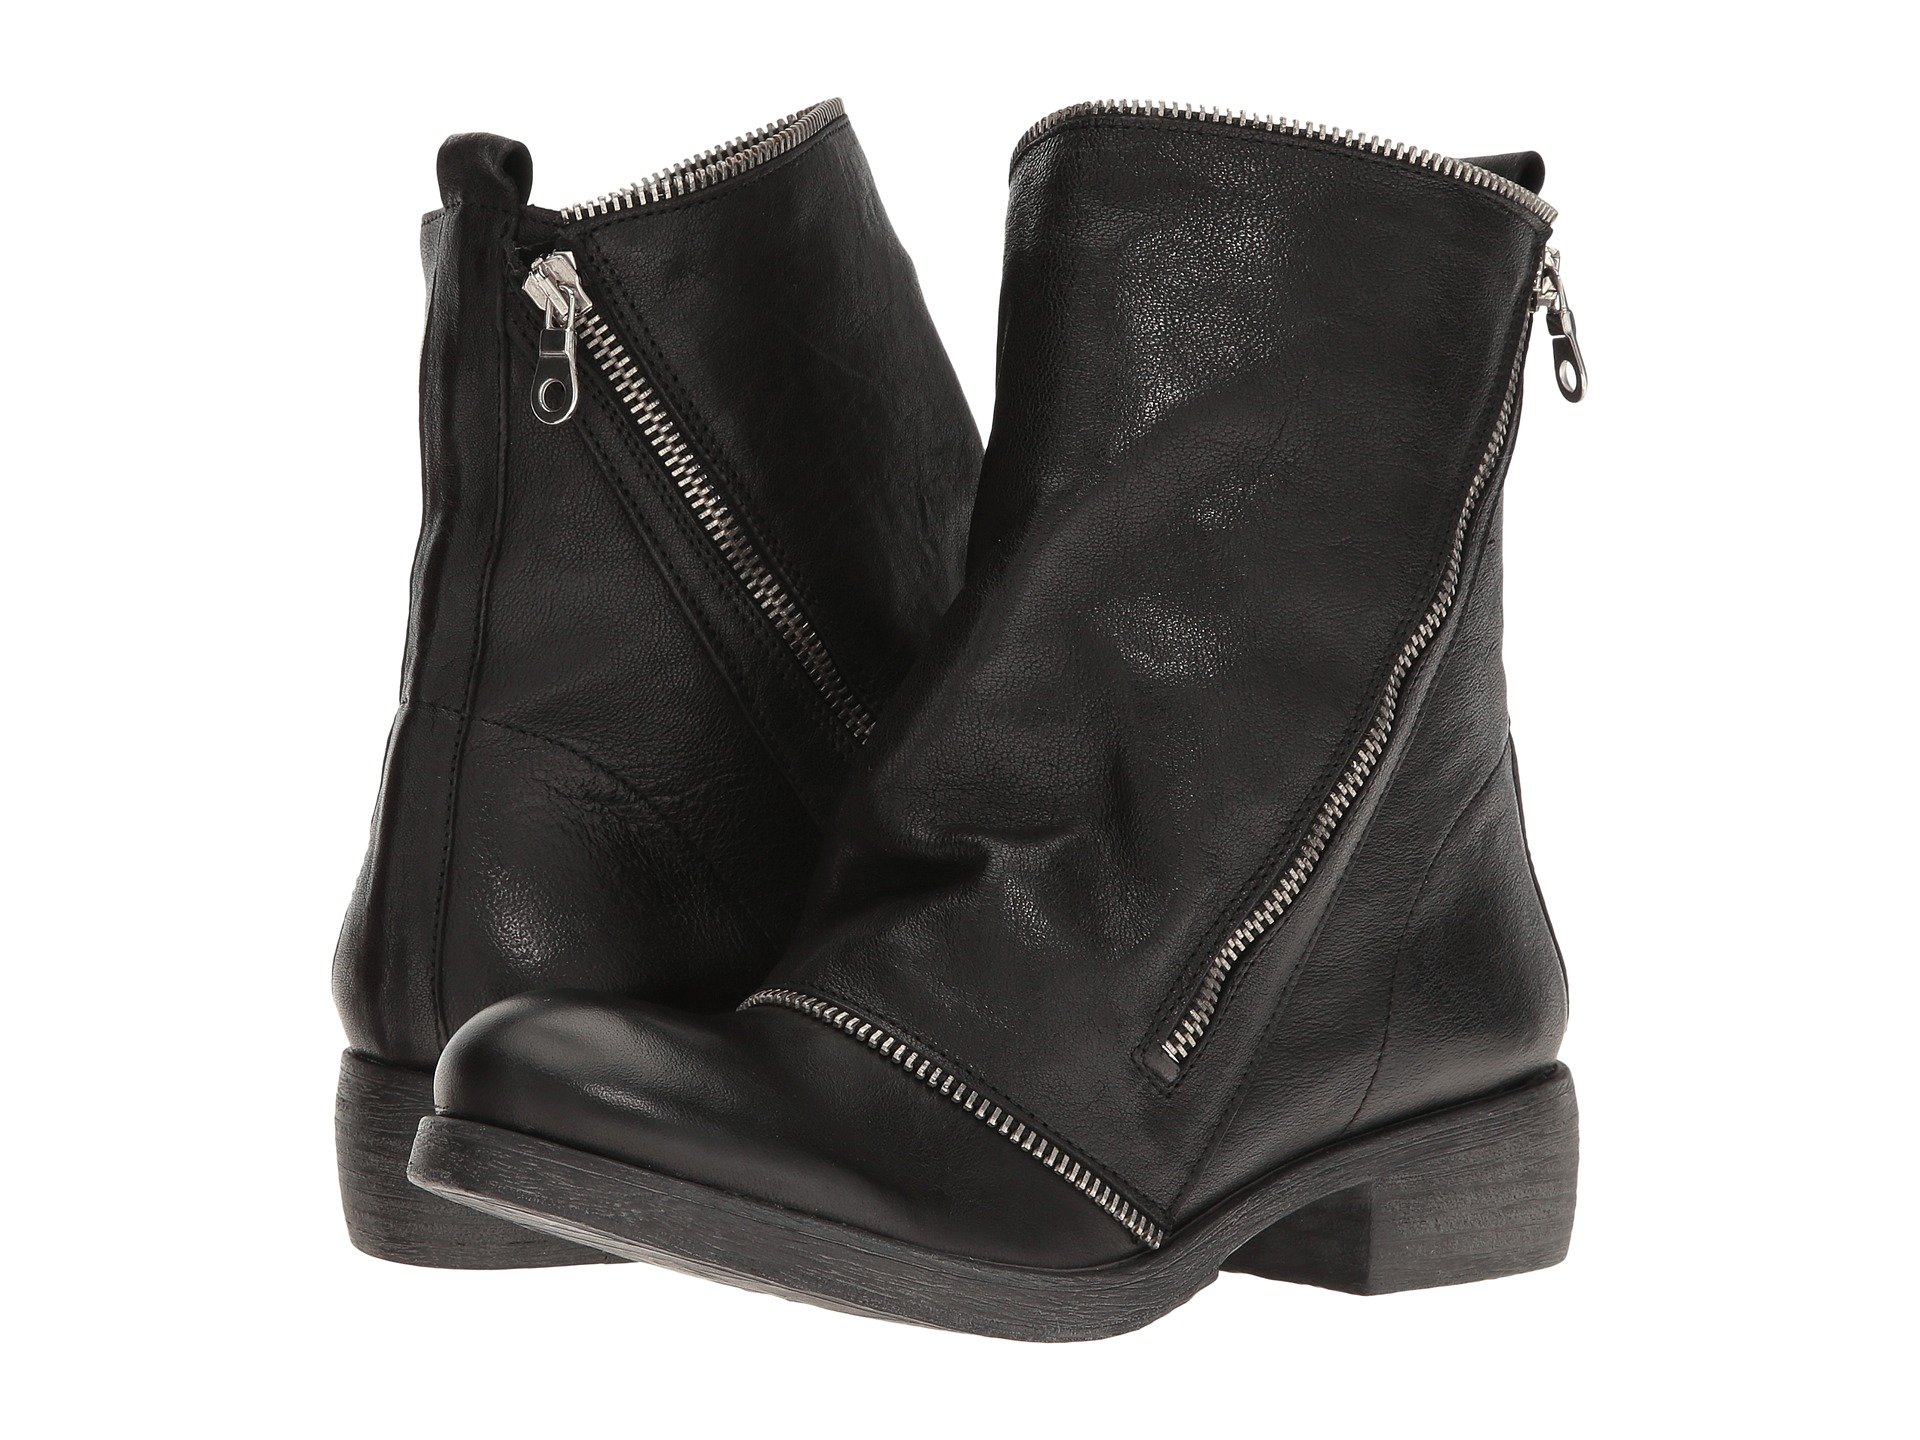 MASSIMO MATTEO Low Boot With Zipper, Black